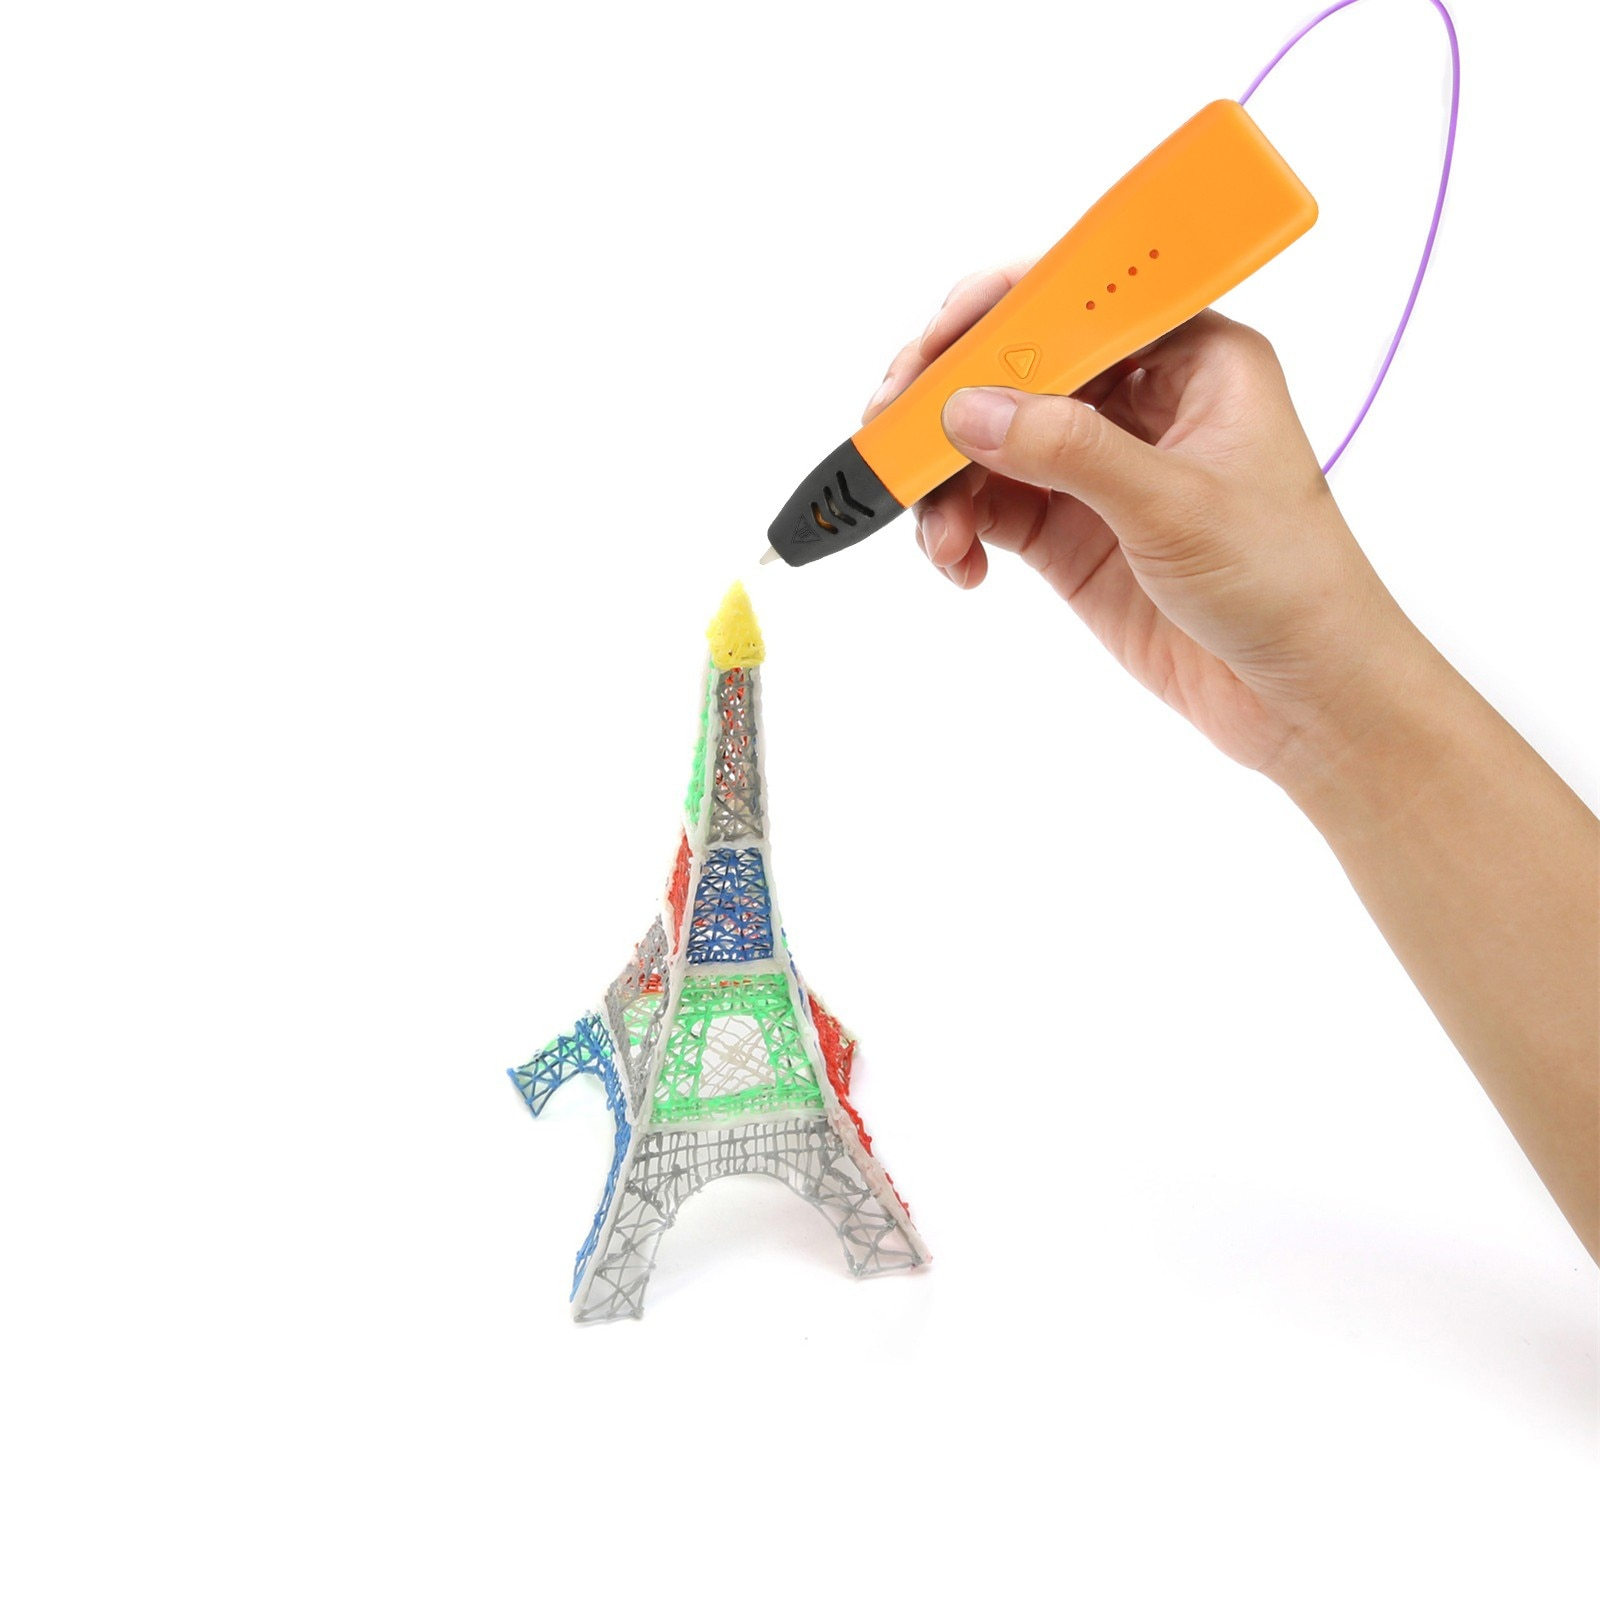 3D Pen Diy 3d Printer Pen Drawing Pens 3d Printing Best For Kids With Abs Filament 1.75mm 110v Christmas Birthday Gift